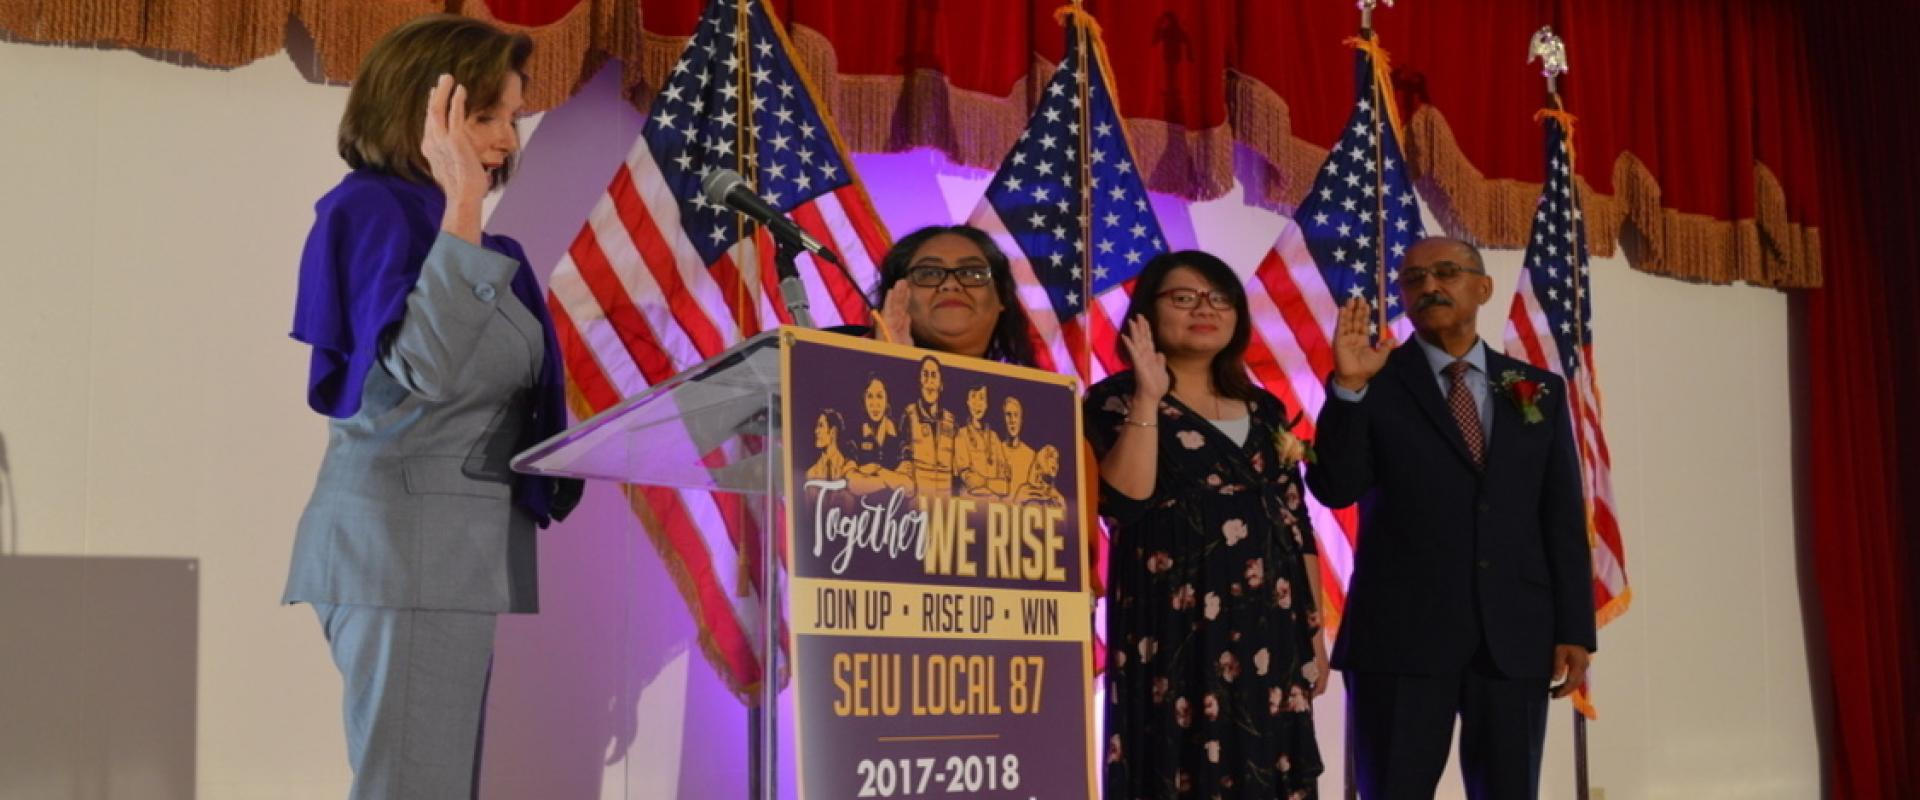 Congresswoman Pelosi administered the oath of office to local labor leaders at SEIU Local 87's Swearing In Ceremony. This year's Executive Board elected its first woman president, first Chinese-American Secretary-Treasurer, and first Muslim-American woman